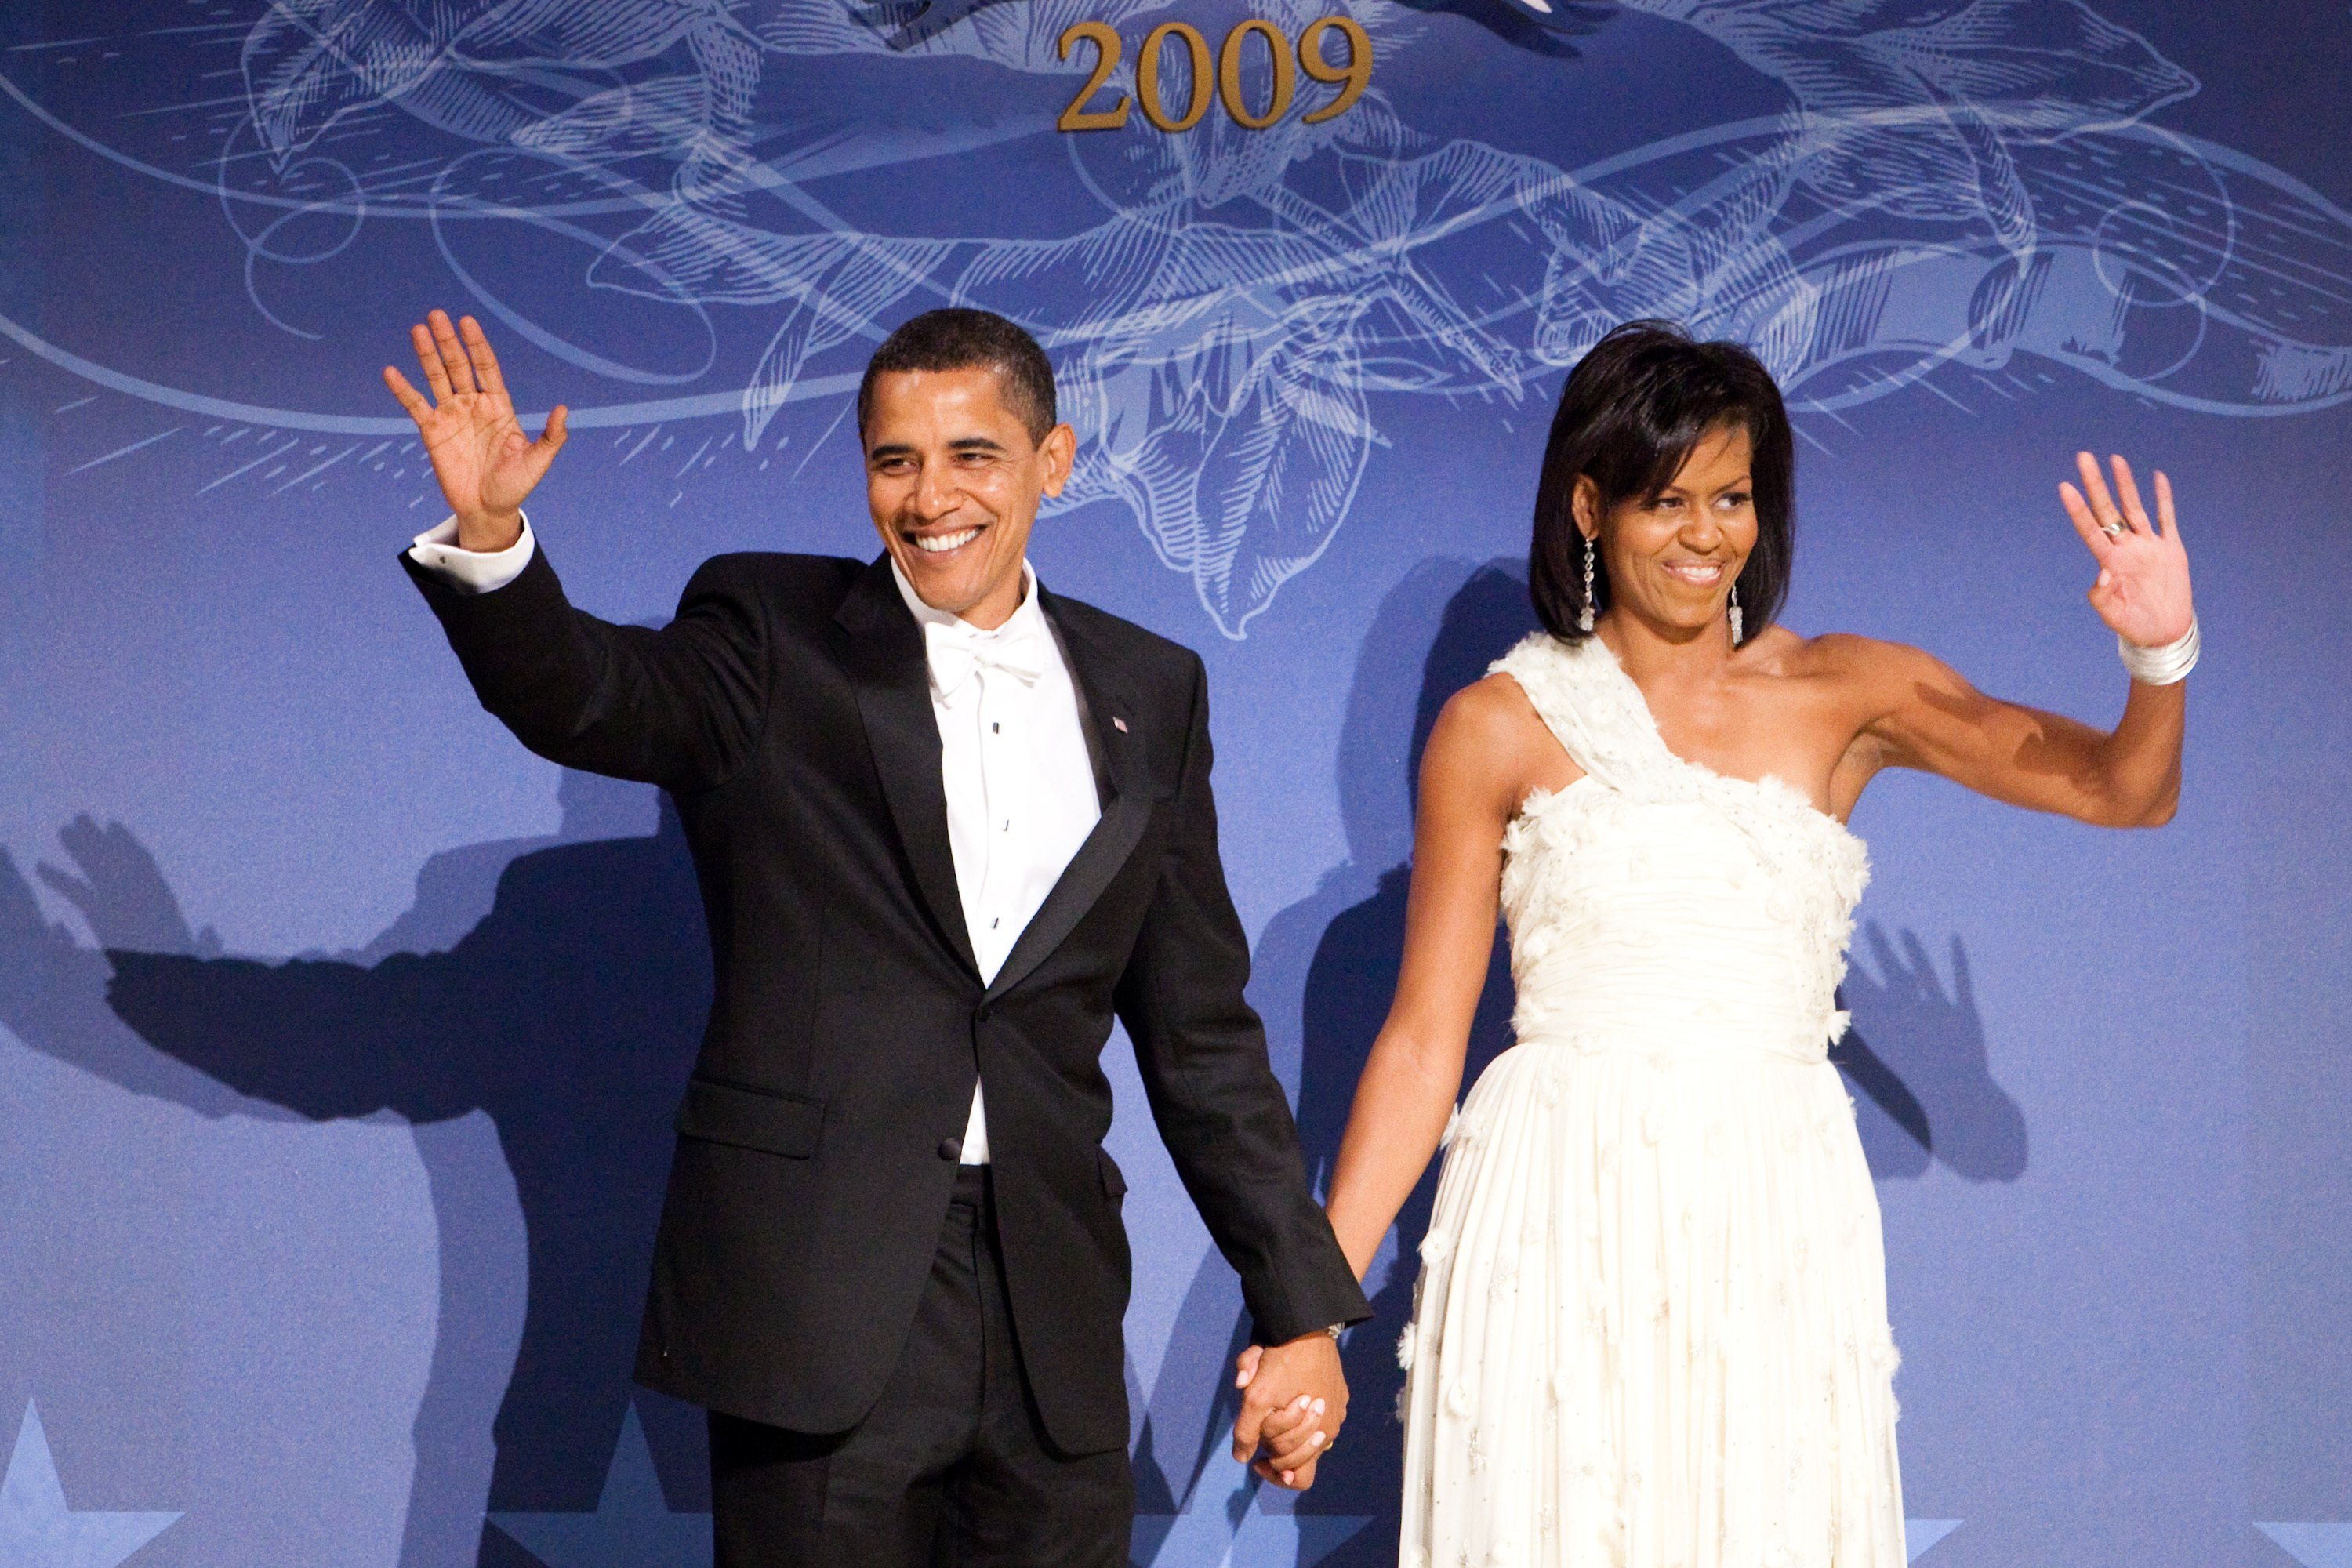 Barack Obama and Michelle Obama at the Southern Inaugural Ball on January 21, 2009, Washington, DC | Source: Getty Images